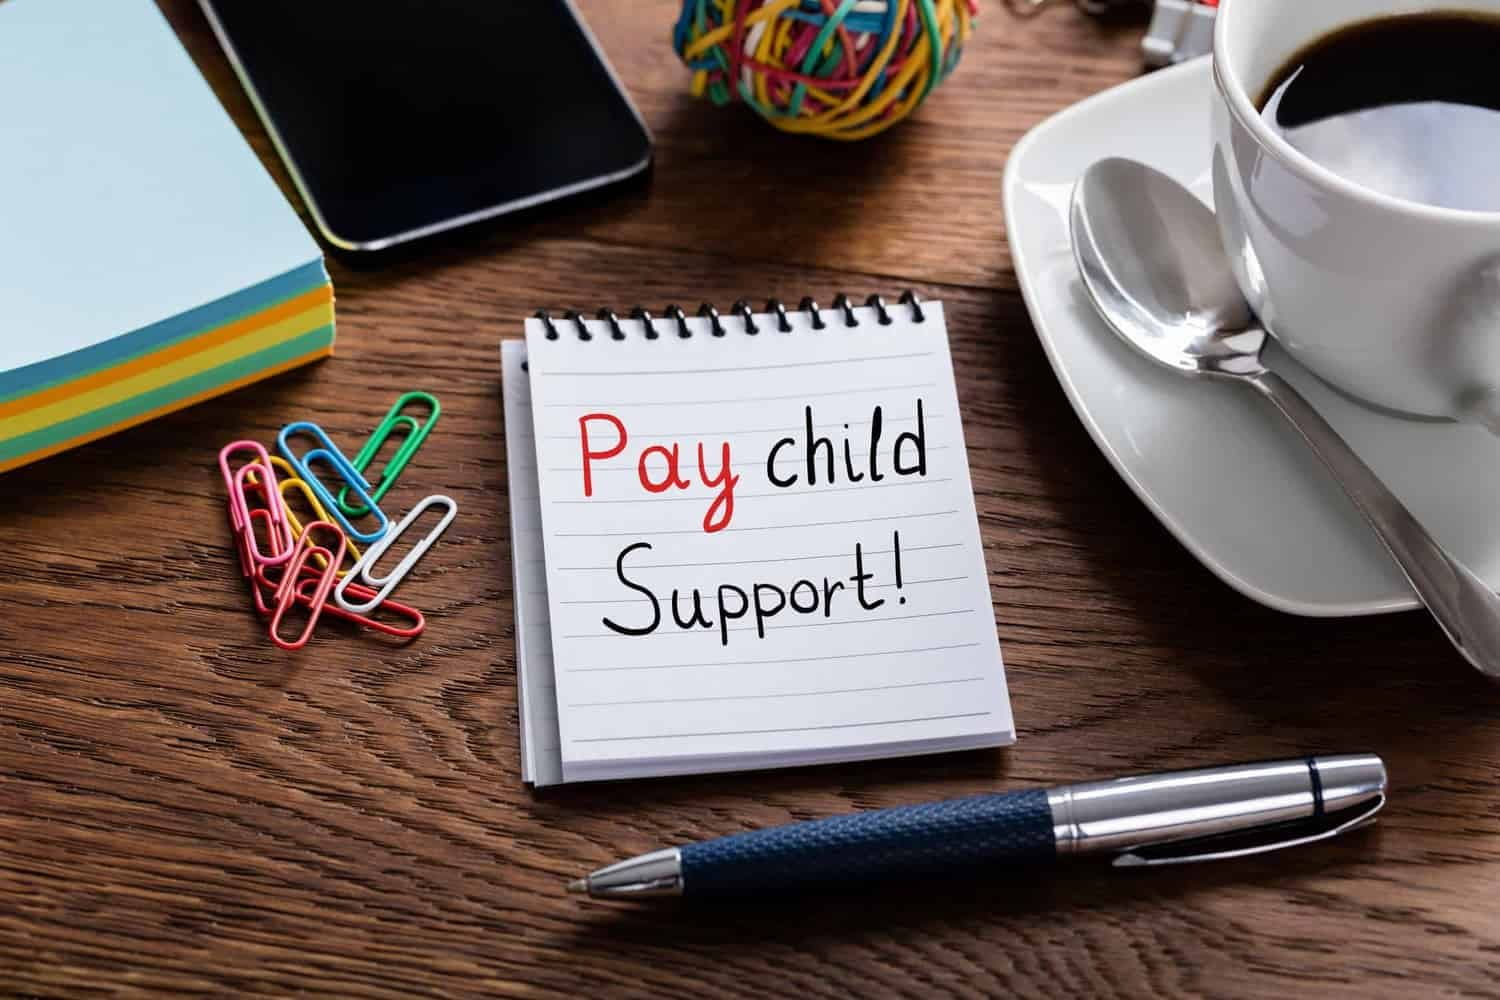 Desk with reminder note to pay child support.